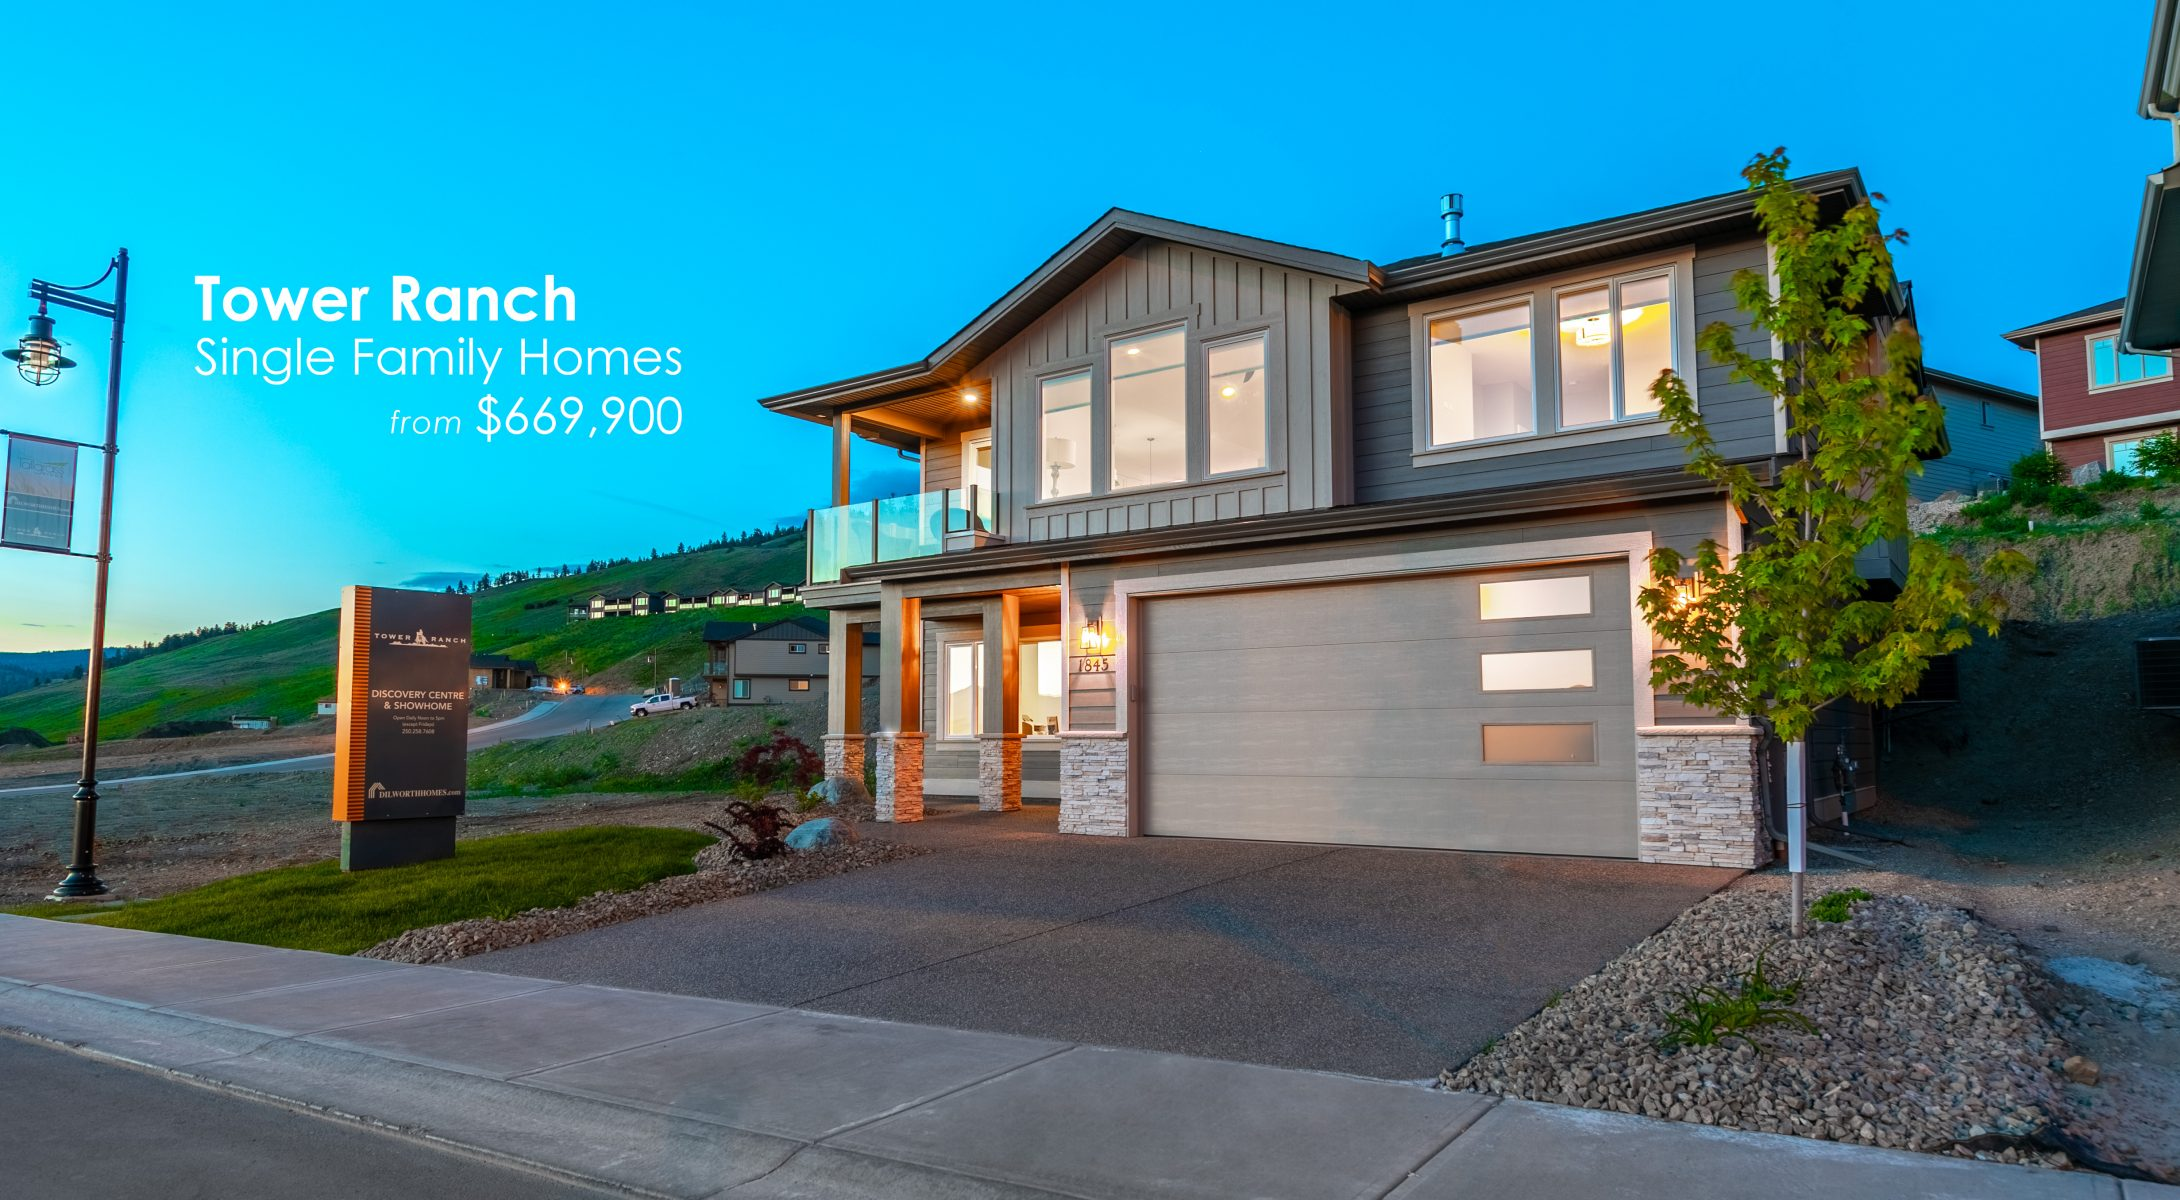 Tower Ranch Show Home